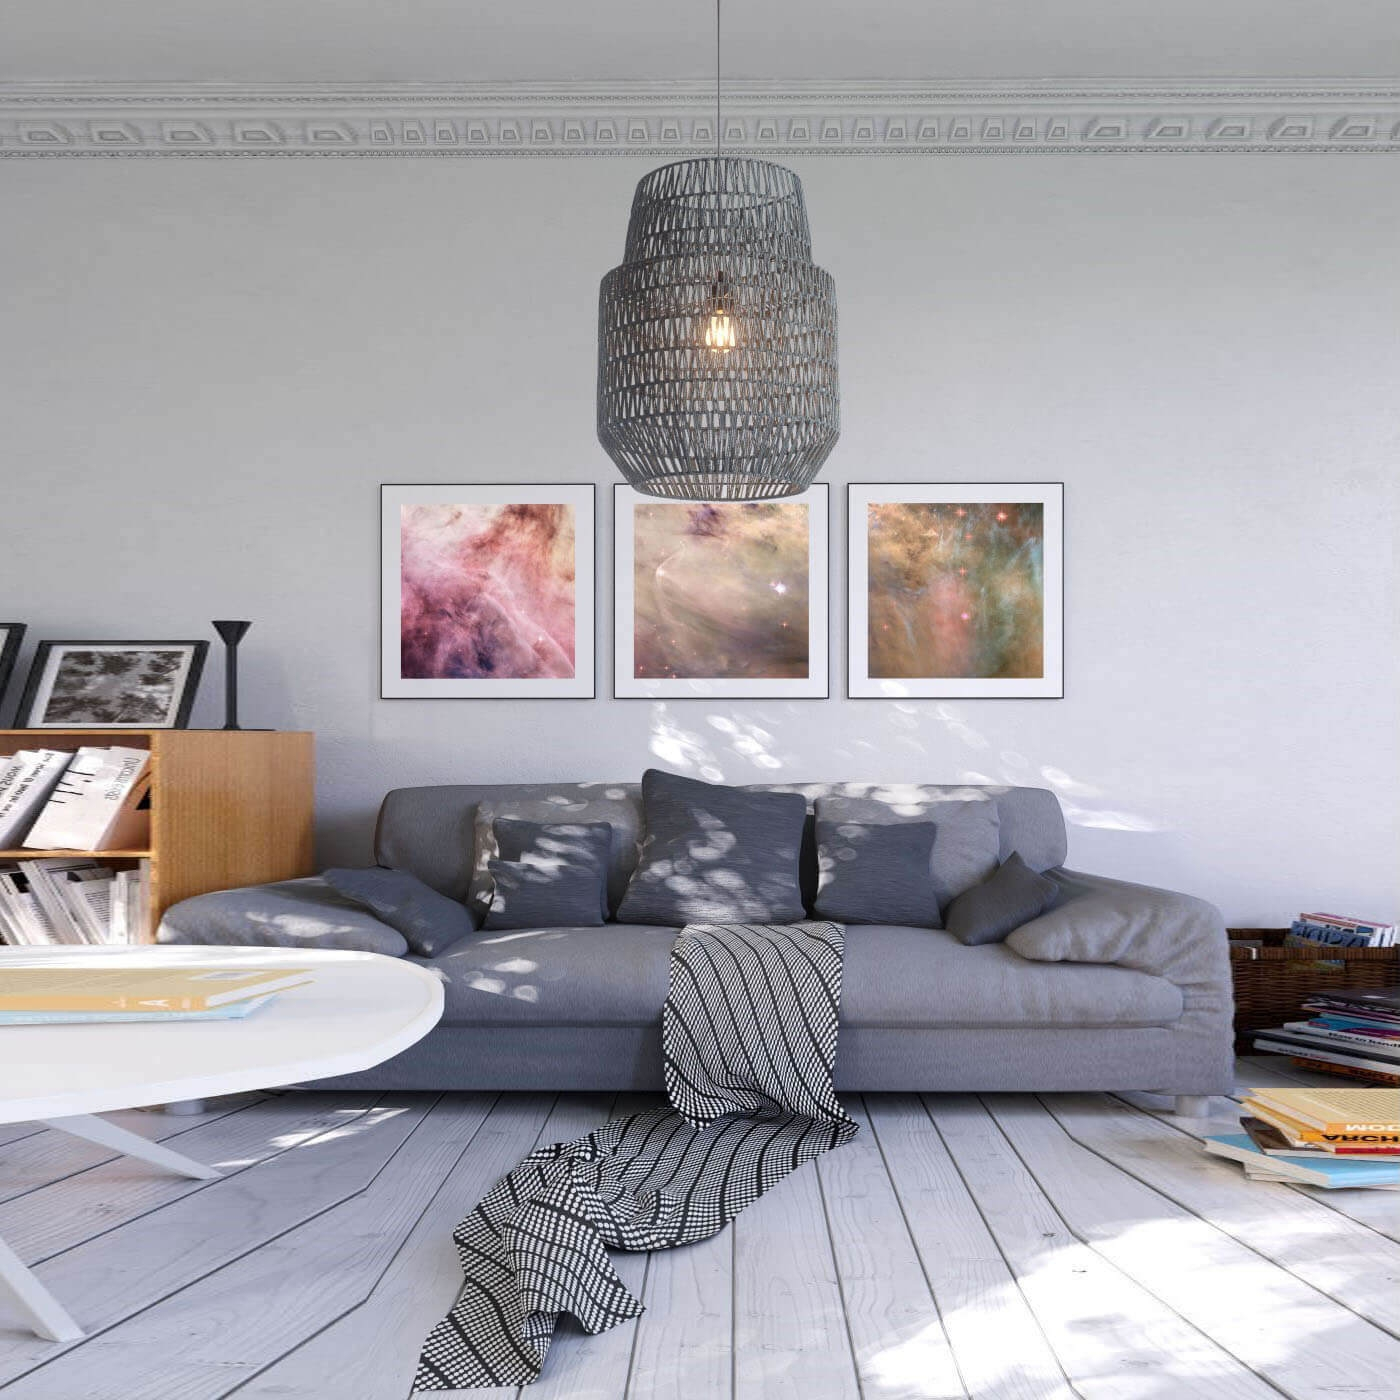 Modern hanging lights environmental view